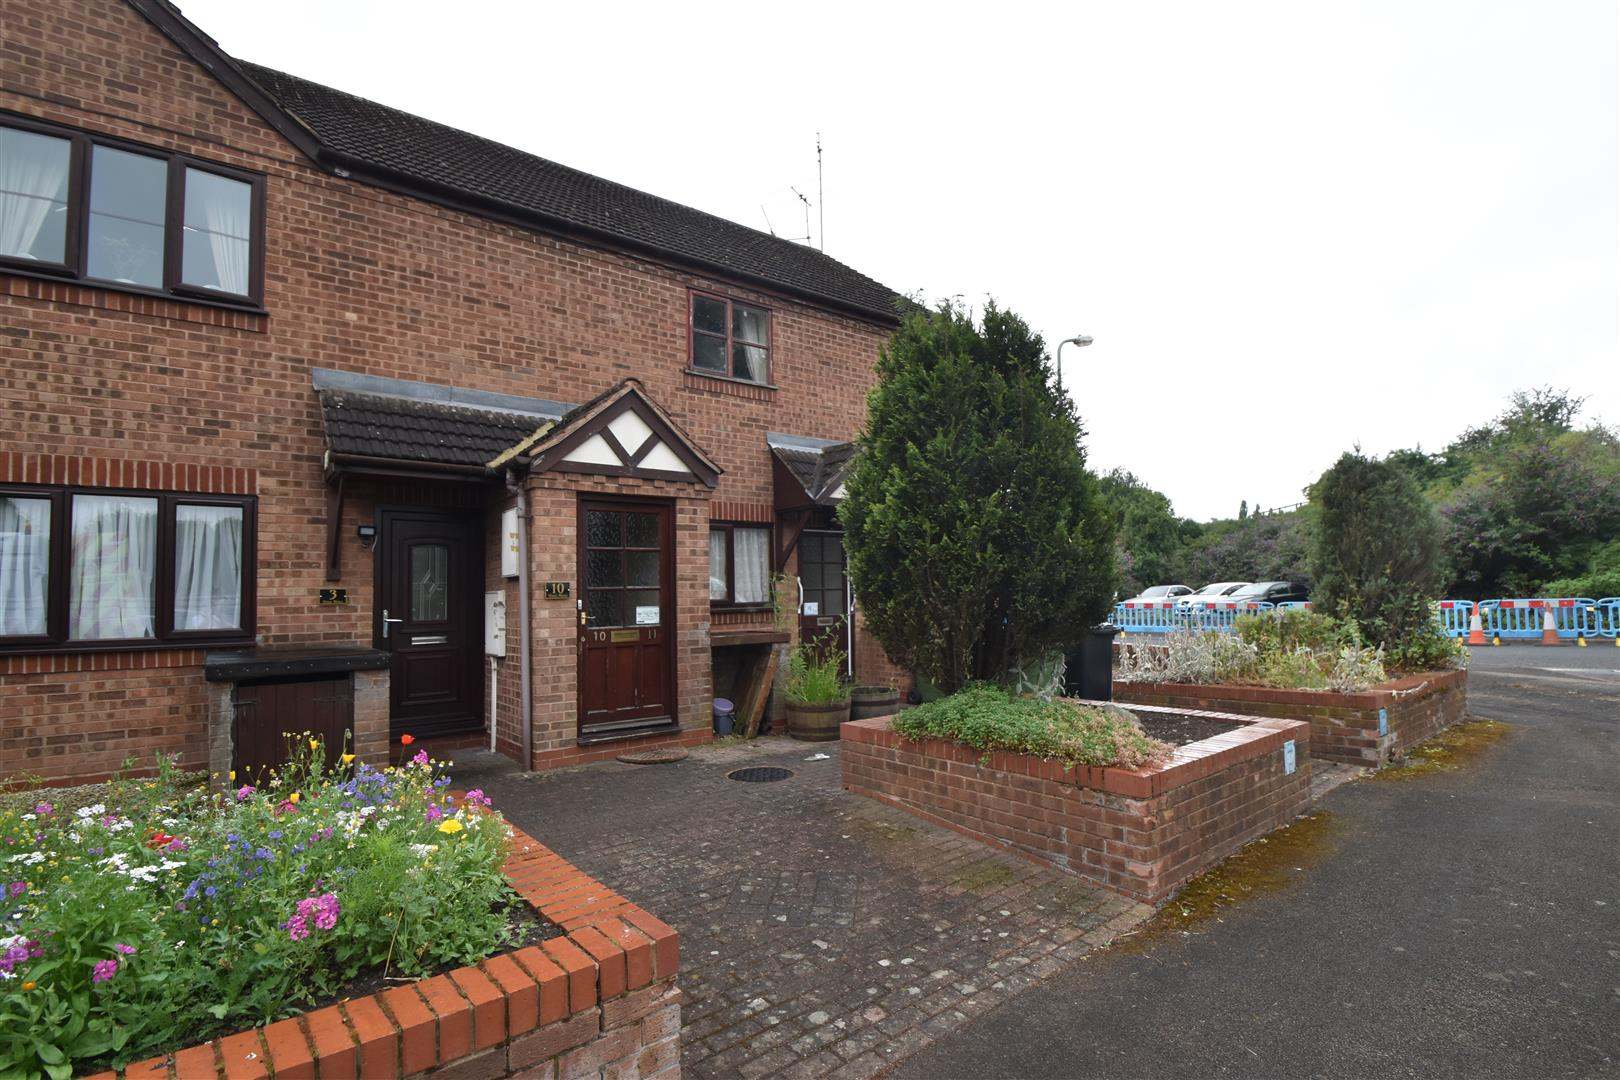 2 Bedrooms Flat for sale in Vines Mews, Droitwich